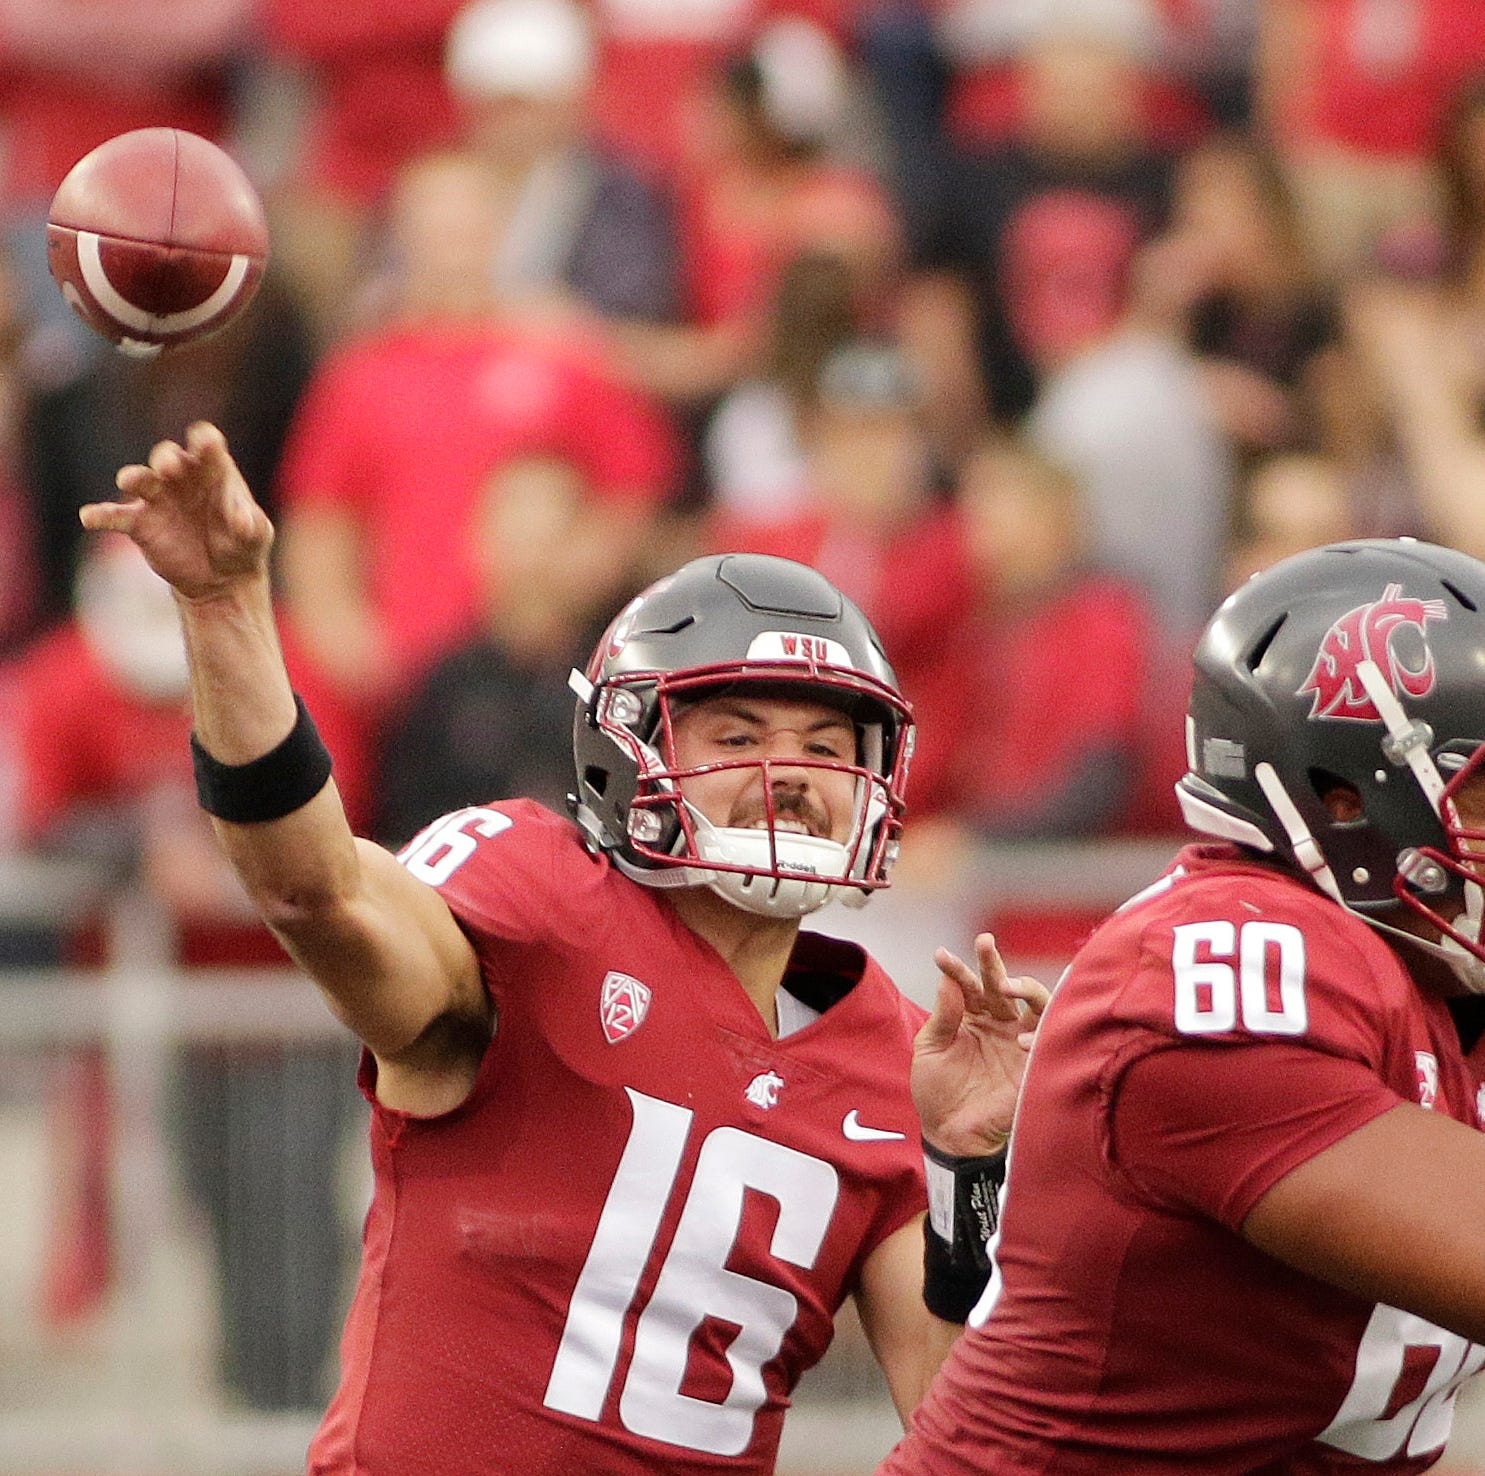 Washington State's Minshew is a QB to watch in the Pac-12